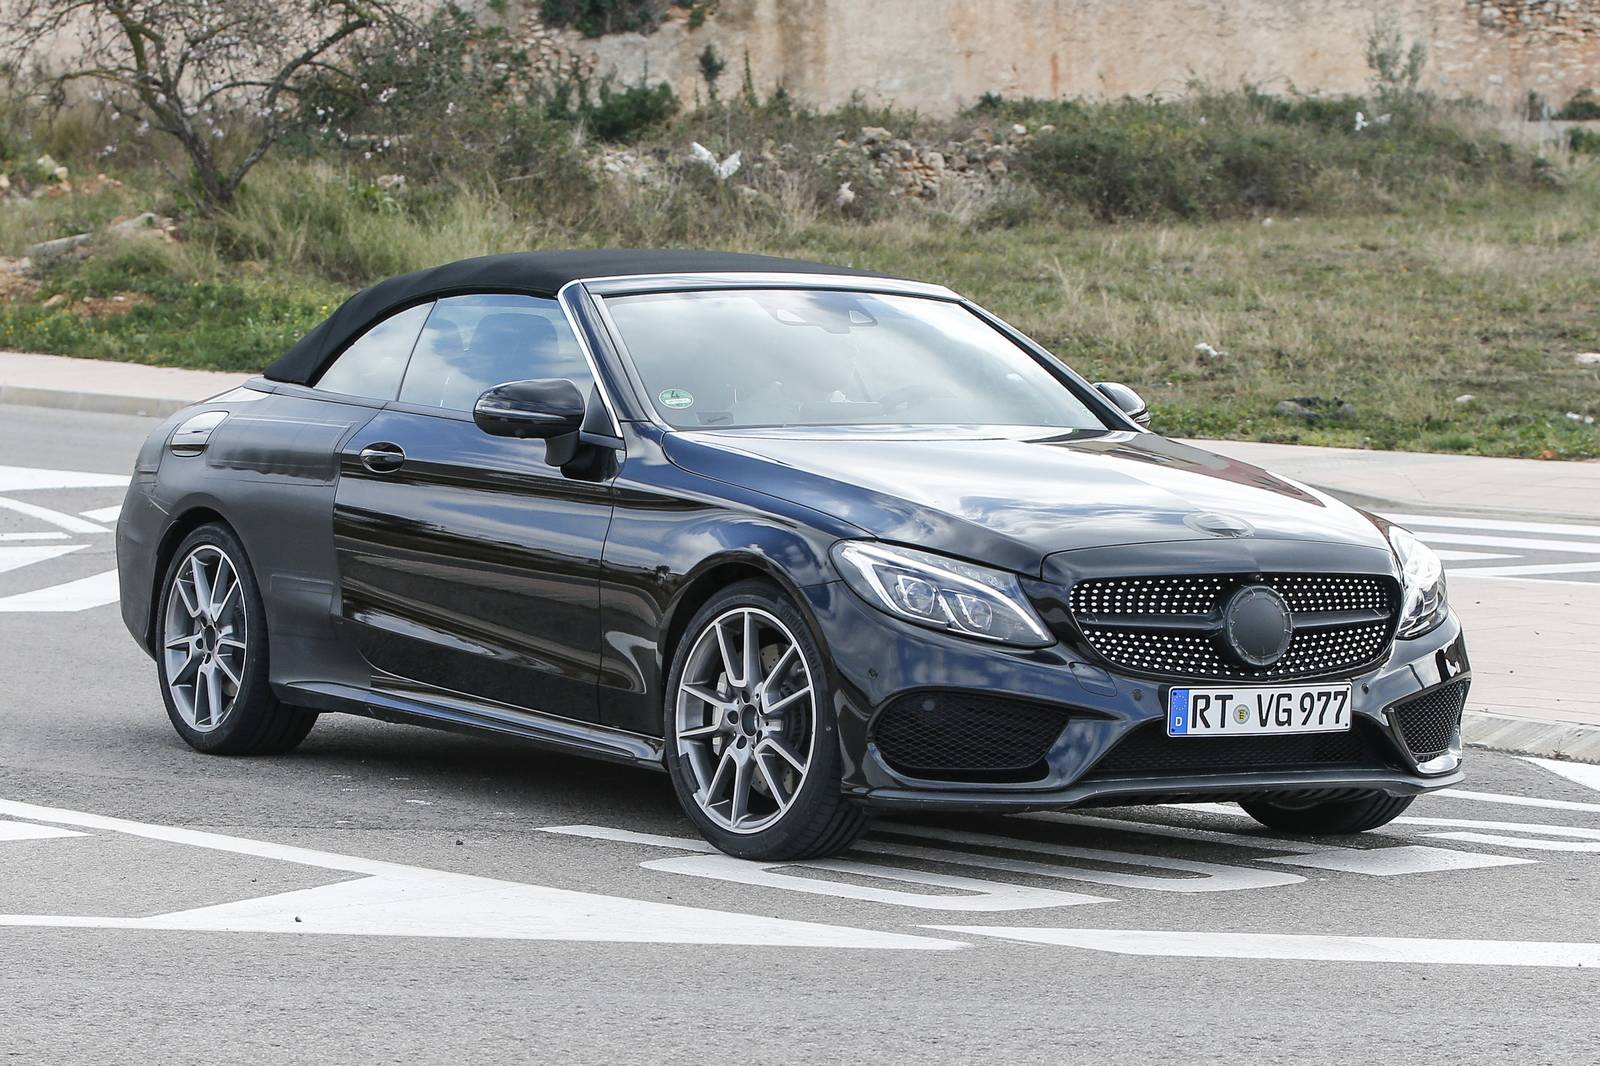 Mercedes-AMG C43 and C63 Cabriolet Spy Shots Emerge